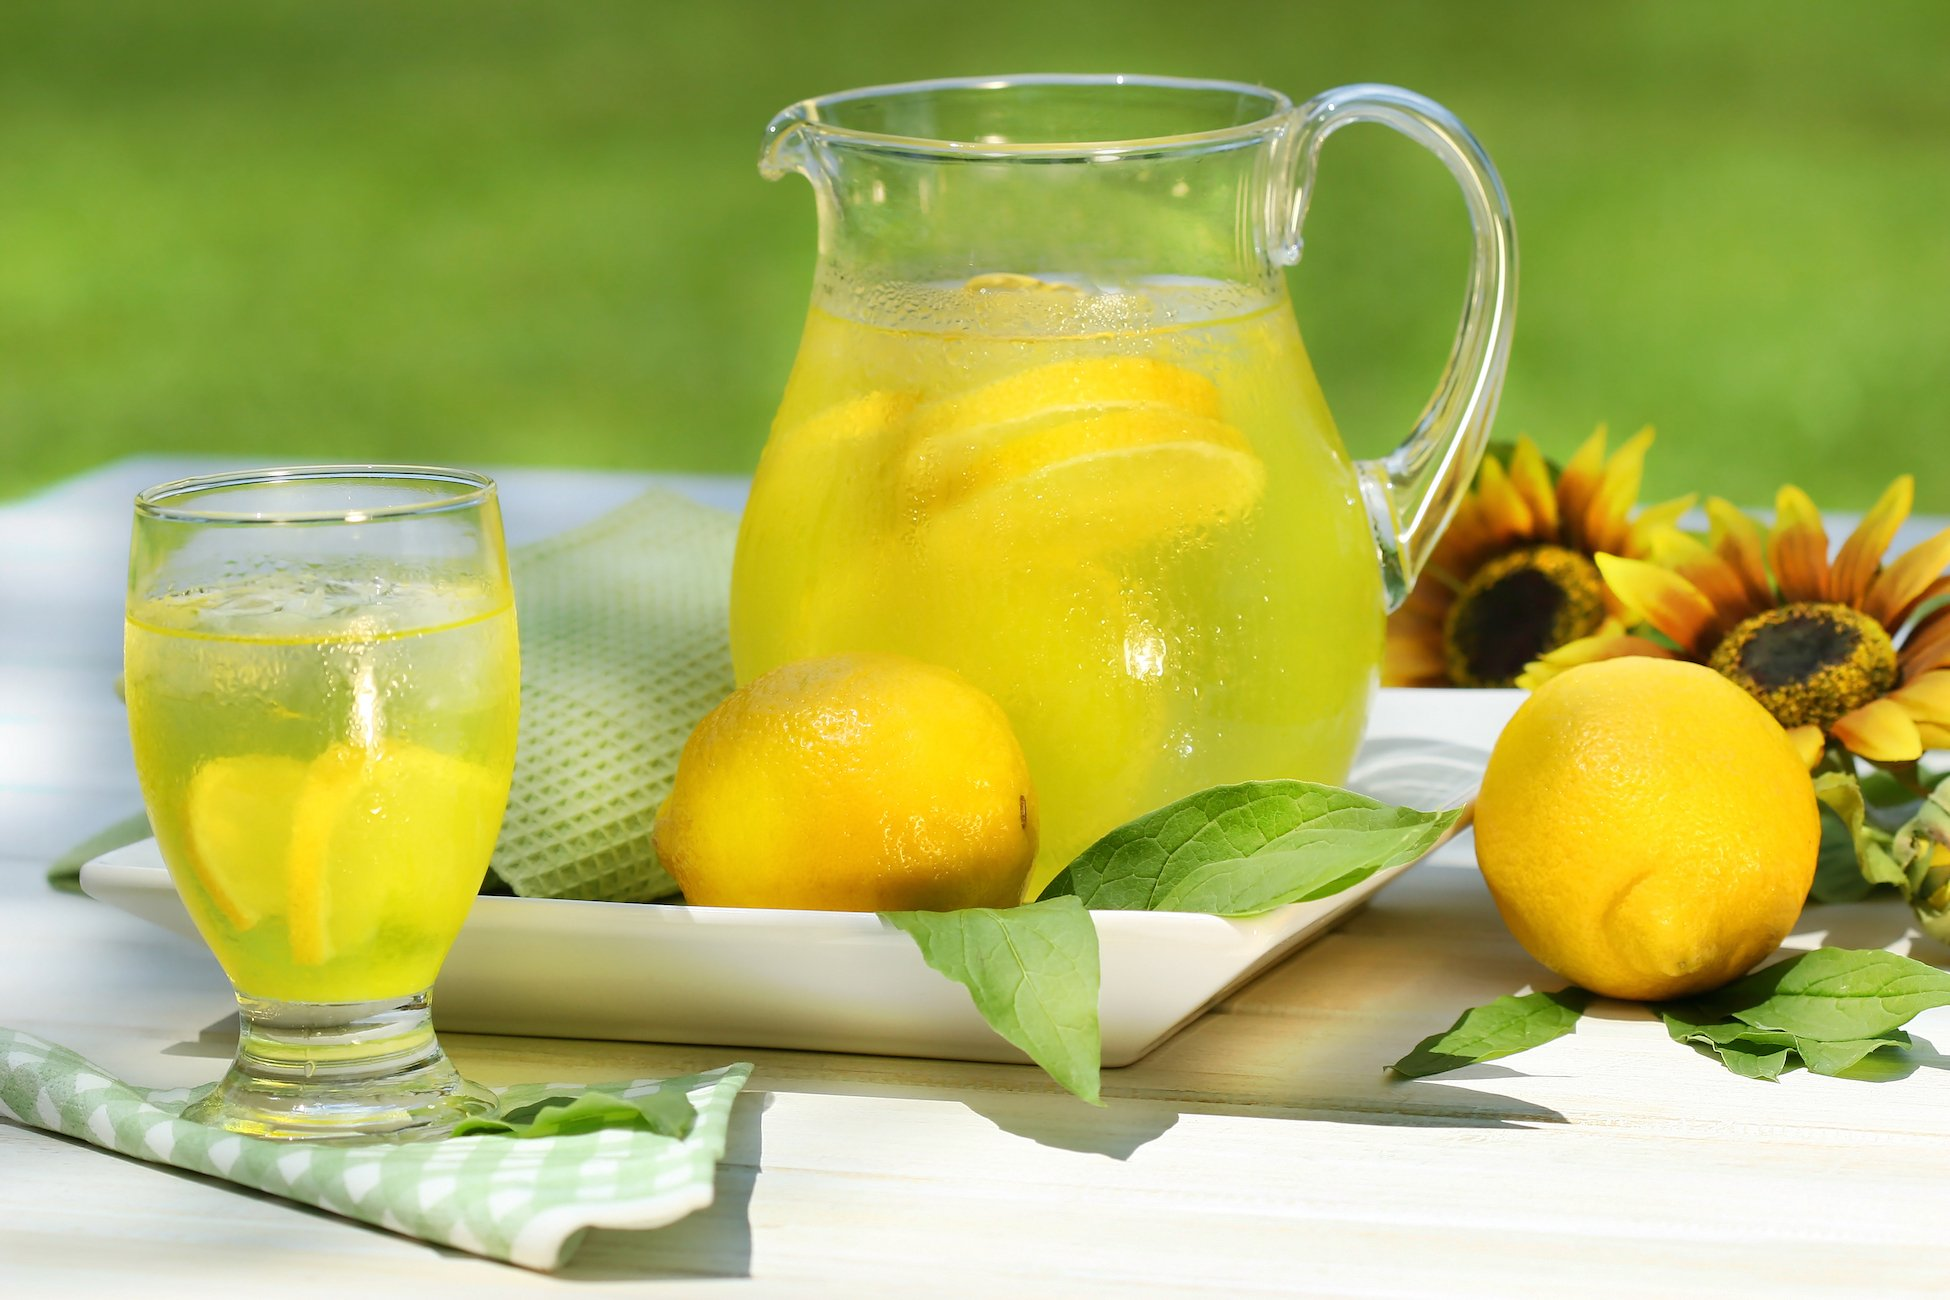 Pitcher of cool lemonade with glass on table